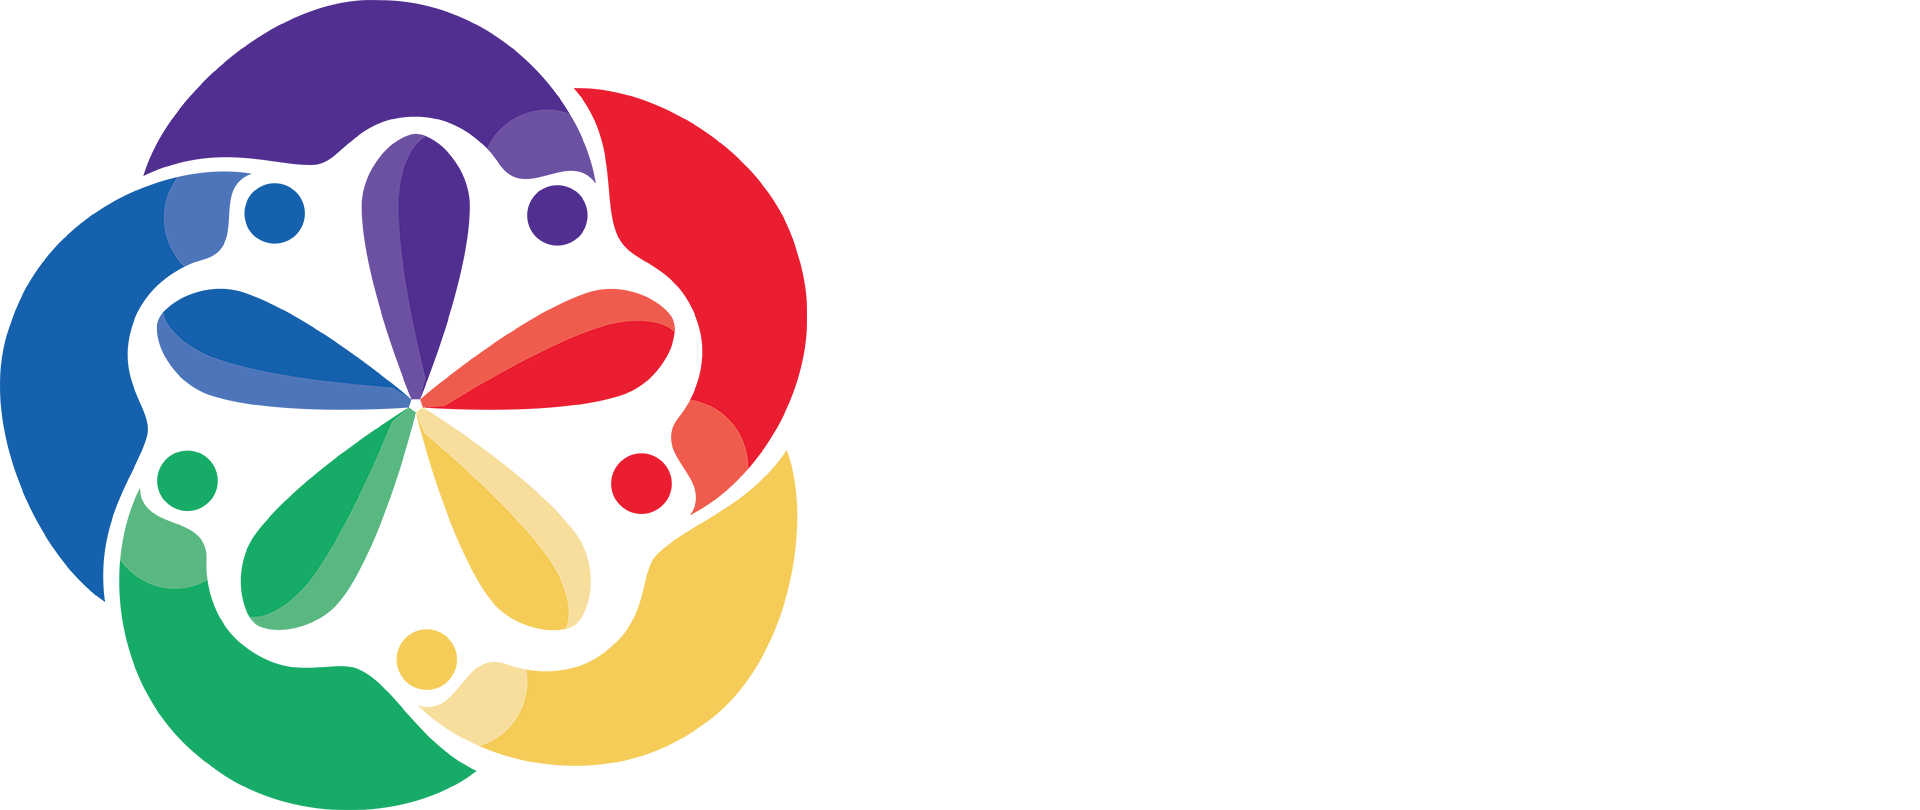 Acsoni supporting the african. Debate clipart speech festival